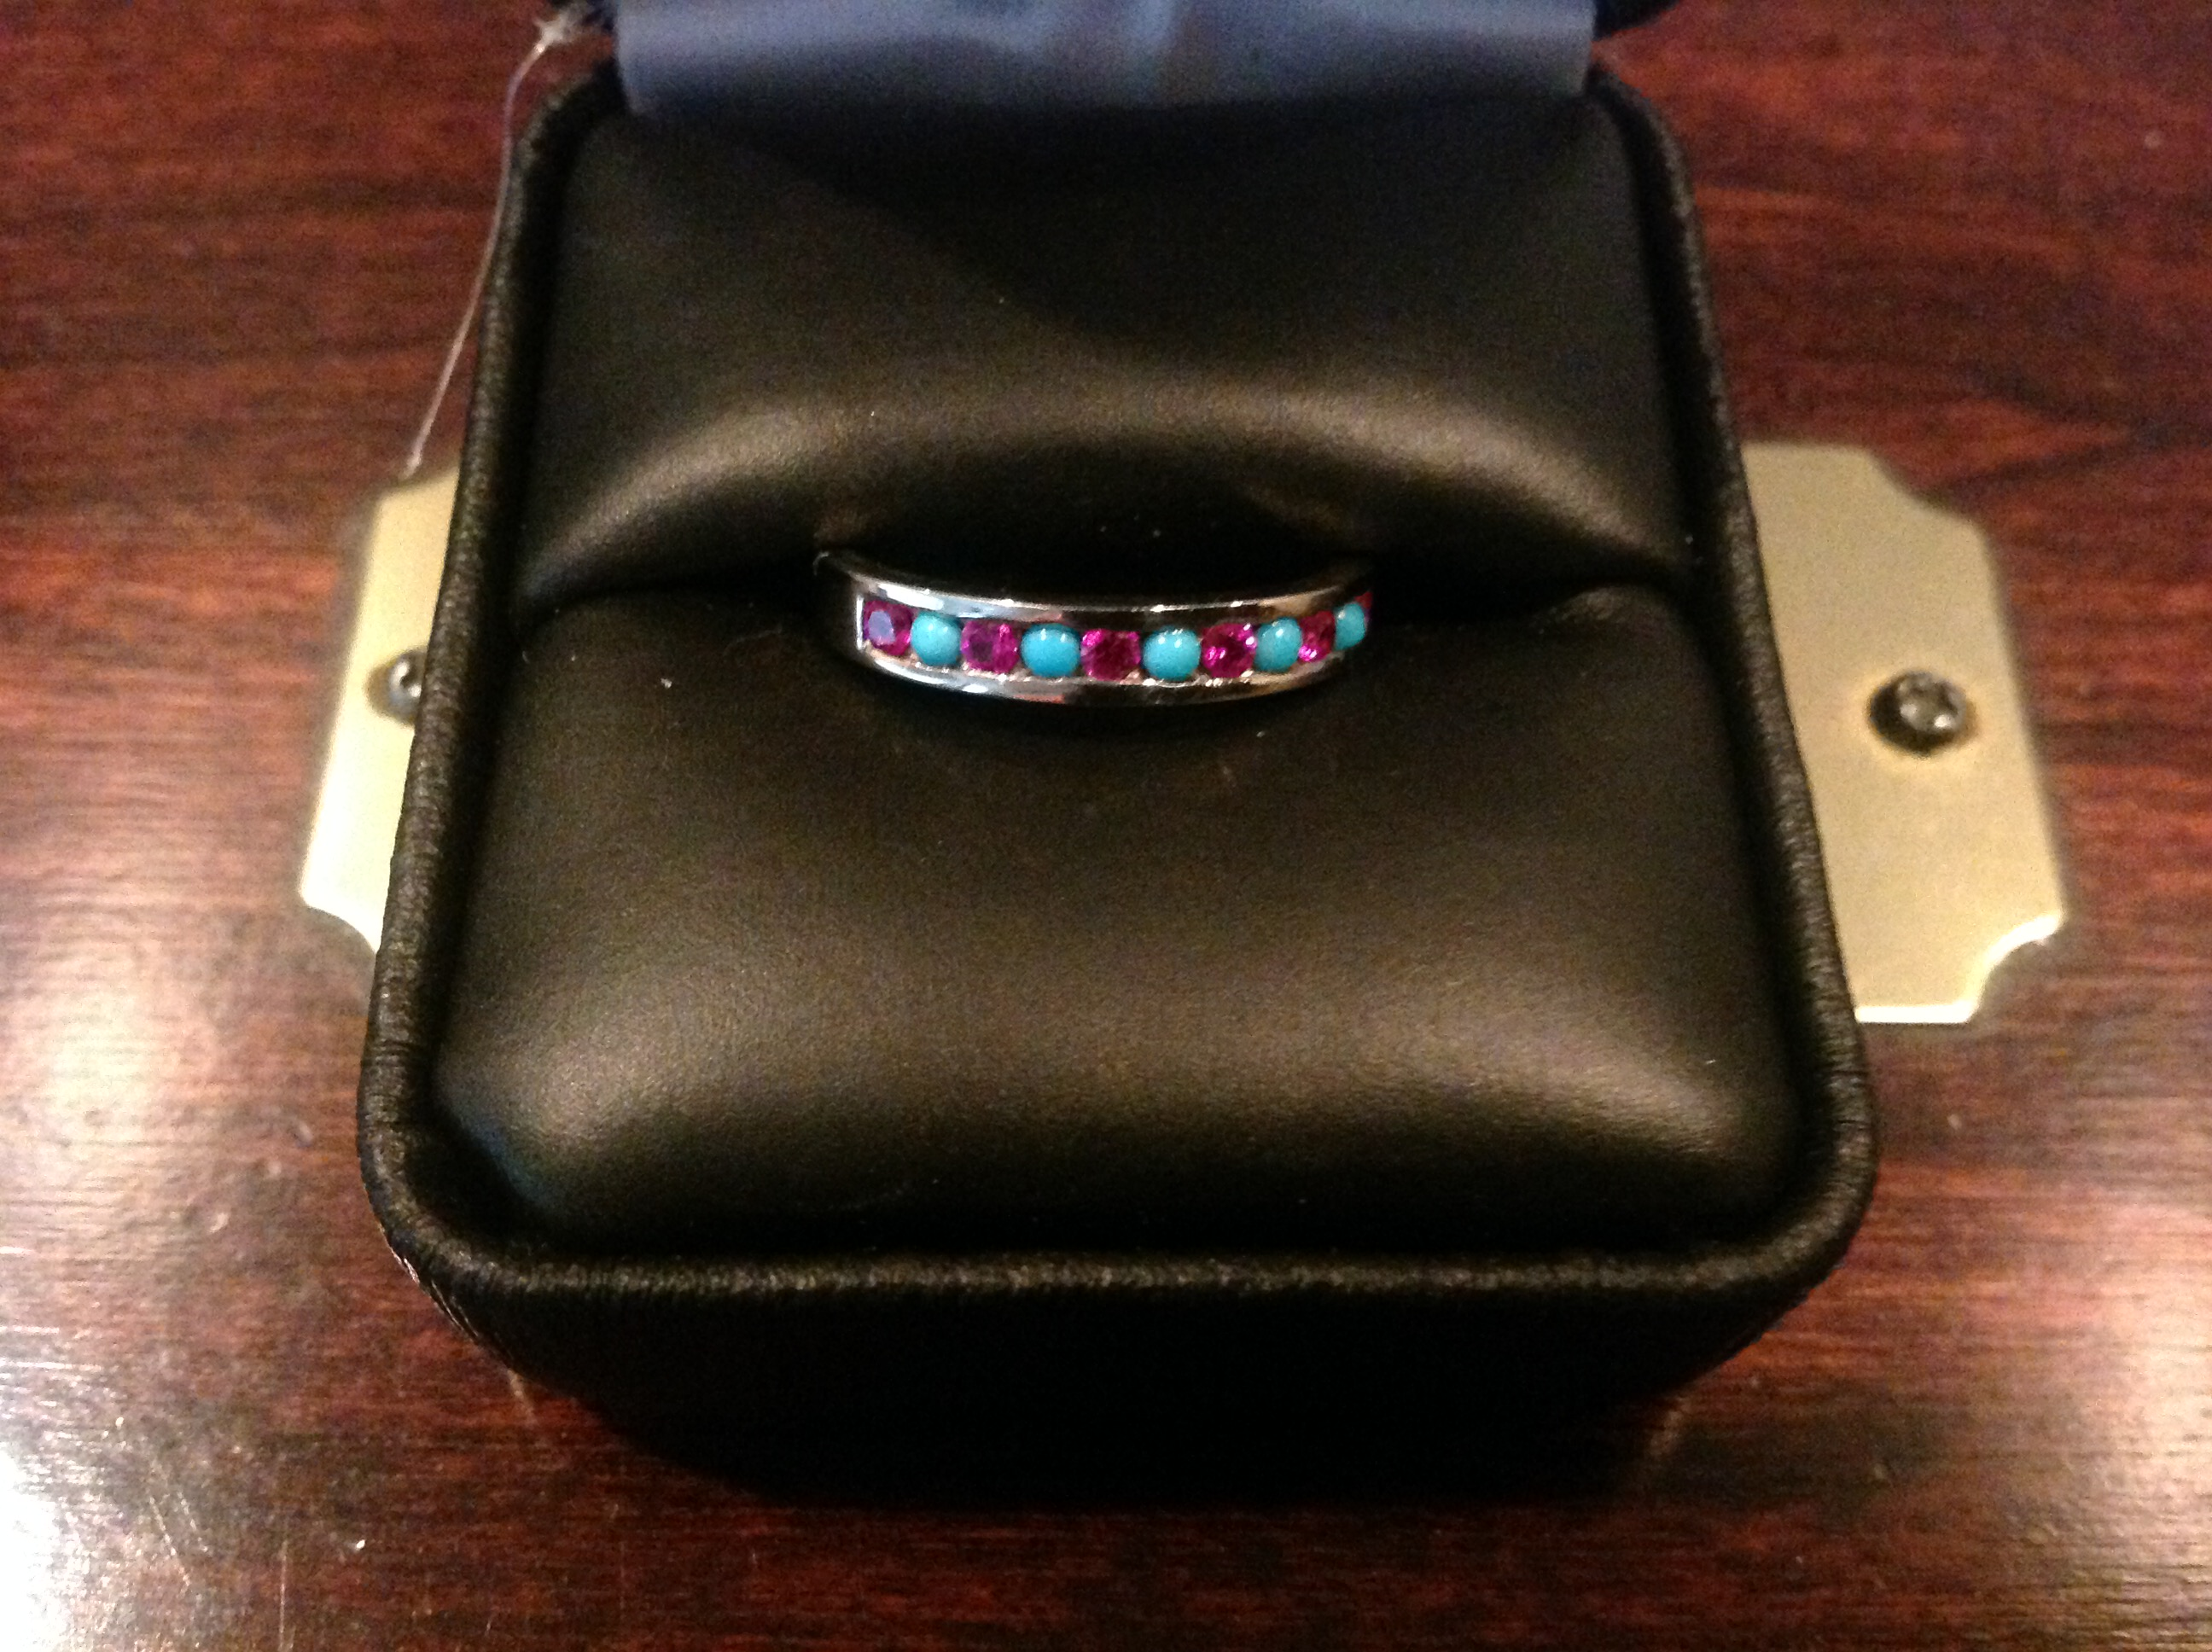 unusual ruby and turquoise wedding band or eternity ring turquoise wedding bands A combination of ruby my birthstone and sleeping beauty turquoise set in 14k white gold I love it and wanted to share with you